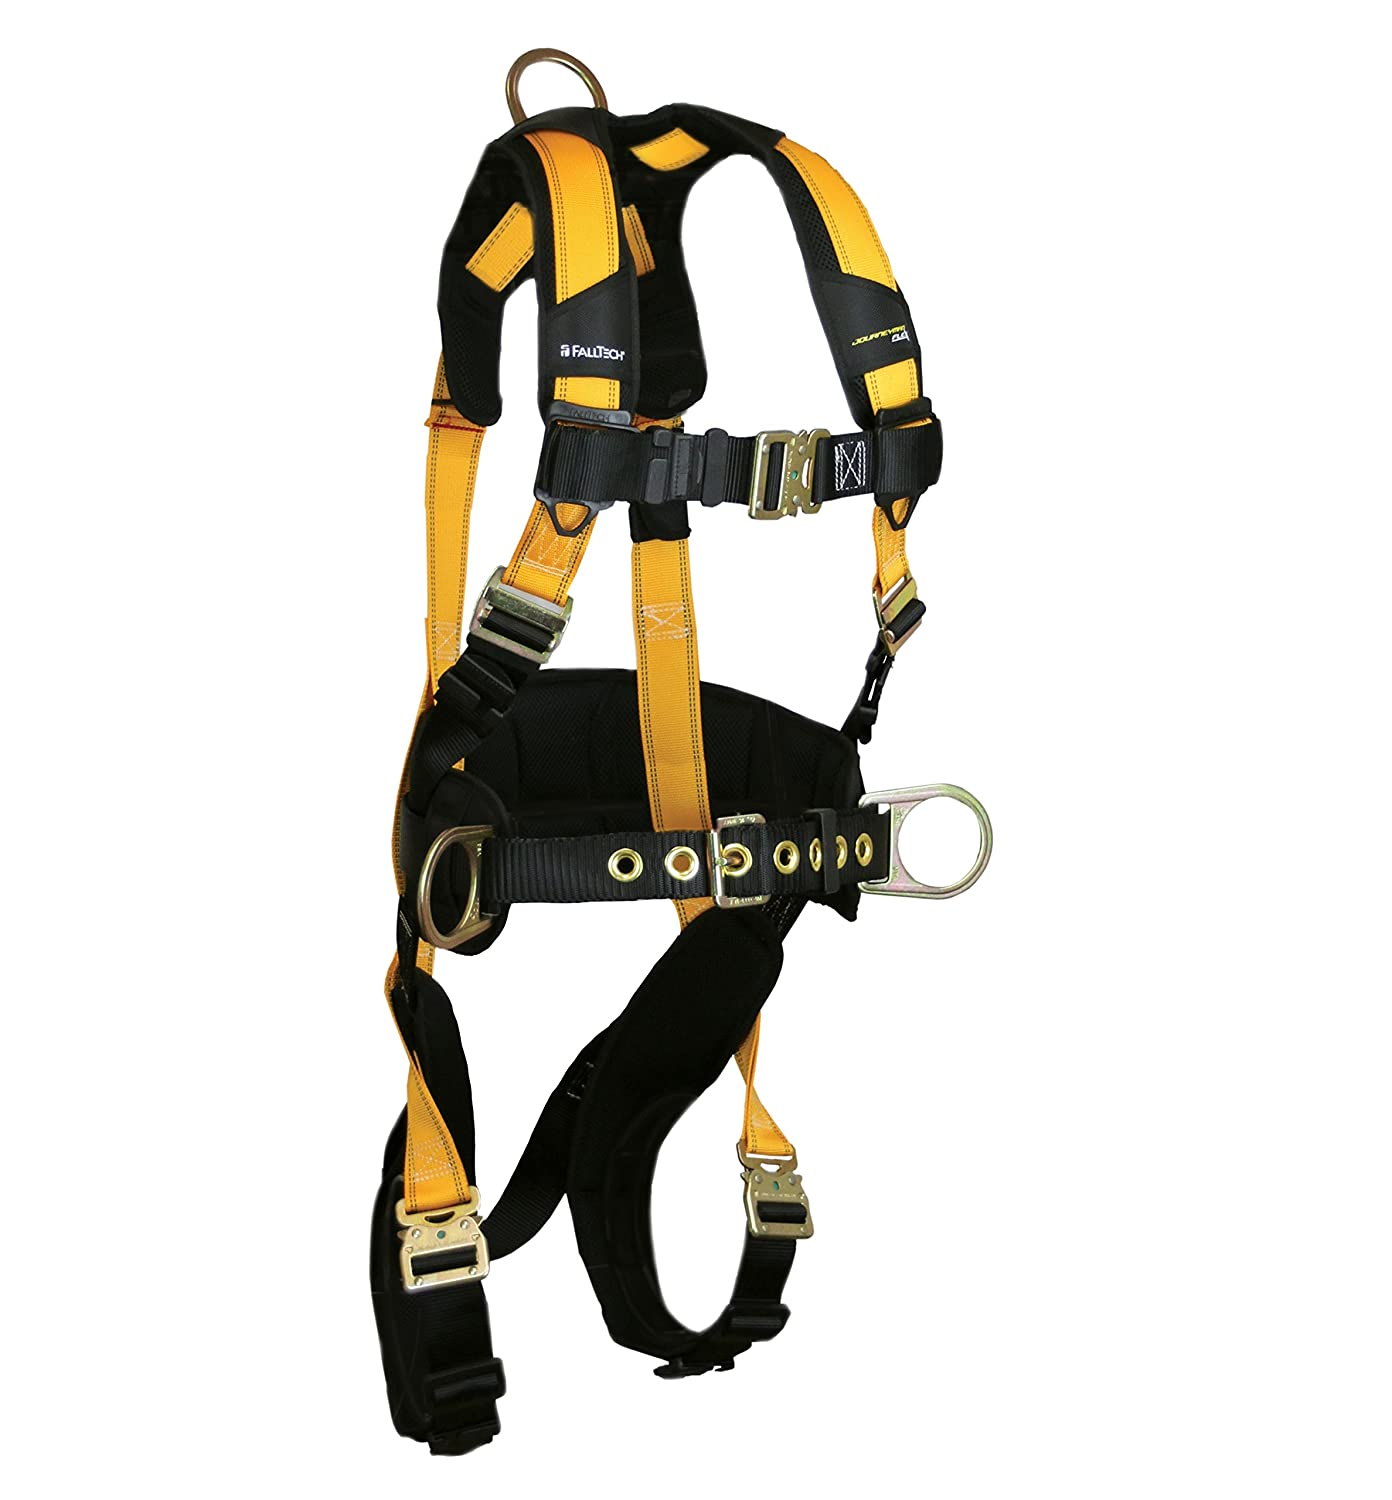 FallTech 7035QCL Journeyman, Belted Construction FBH - 3 D-Rings, Back and Side, Quick Connect Legs and Chest, Durable 6 Waist Pad, Large, Yellow/Black by FallTech B014DQZGIM